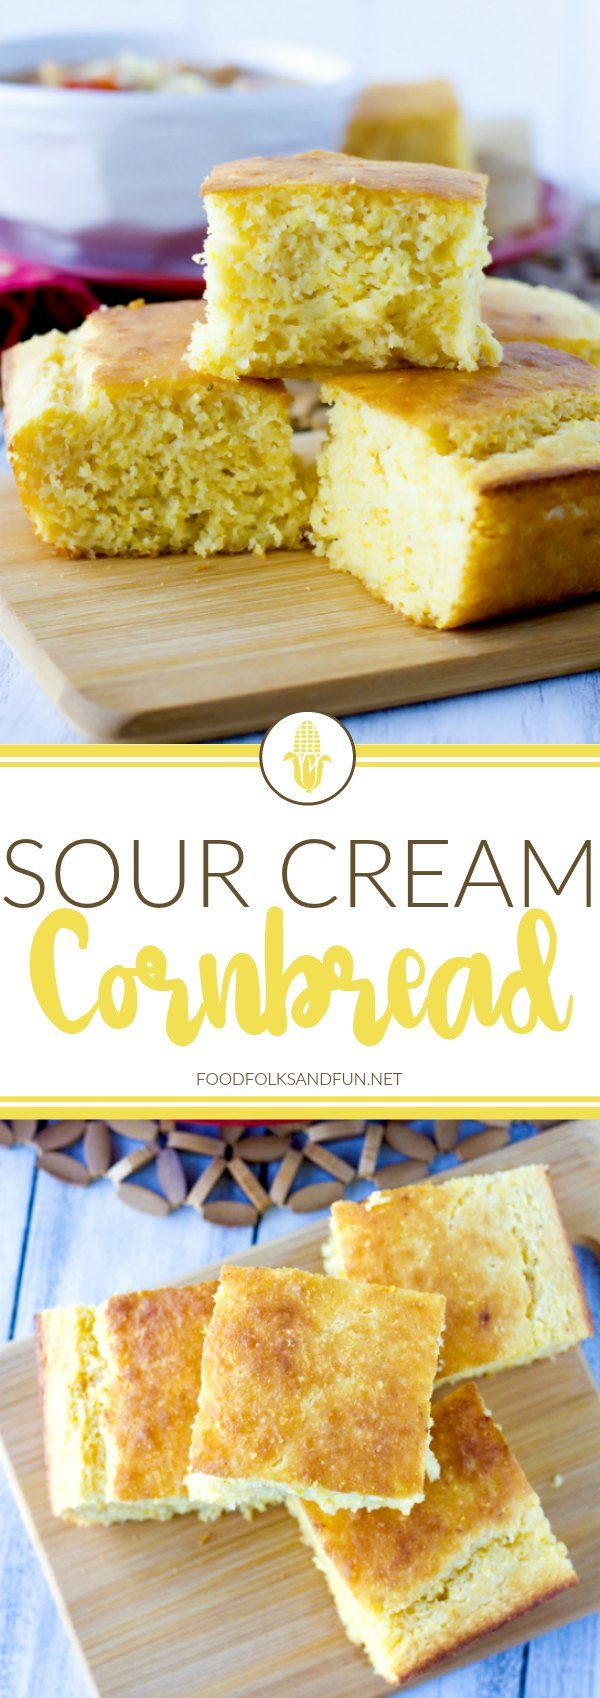 This Sour Cream Cornbread recipe is so moist, delicious, and not overly sweet. It's super easy to make, and the entire family will LOVE it! via @foodfolksandfun